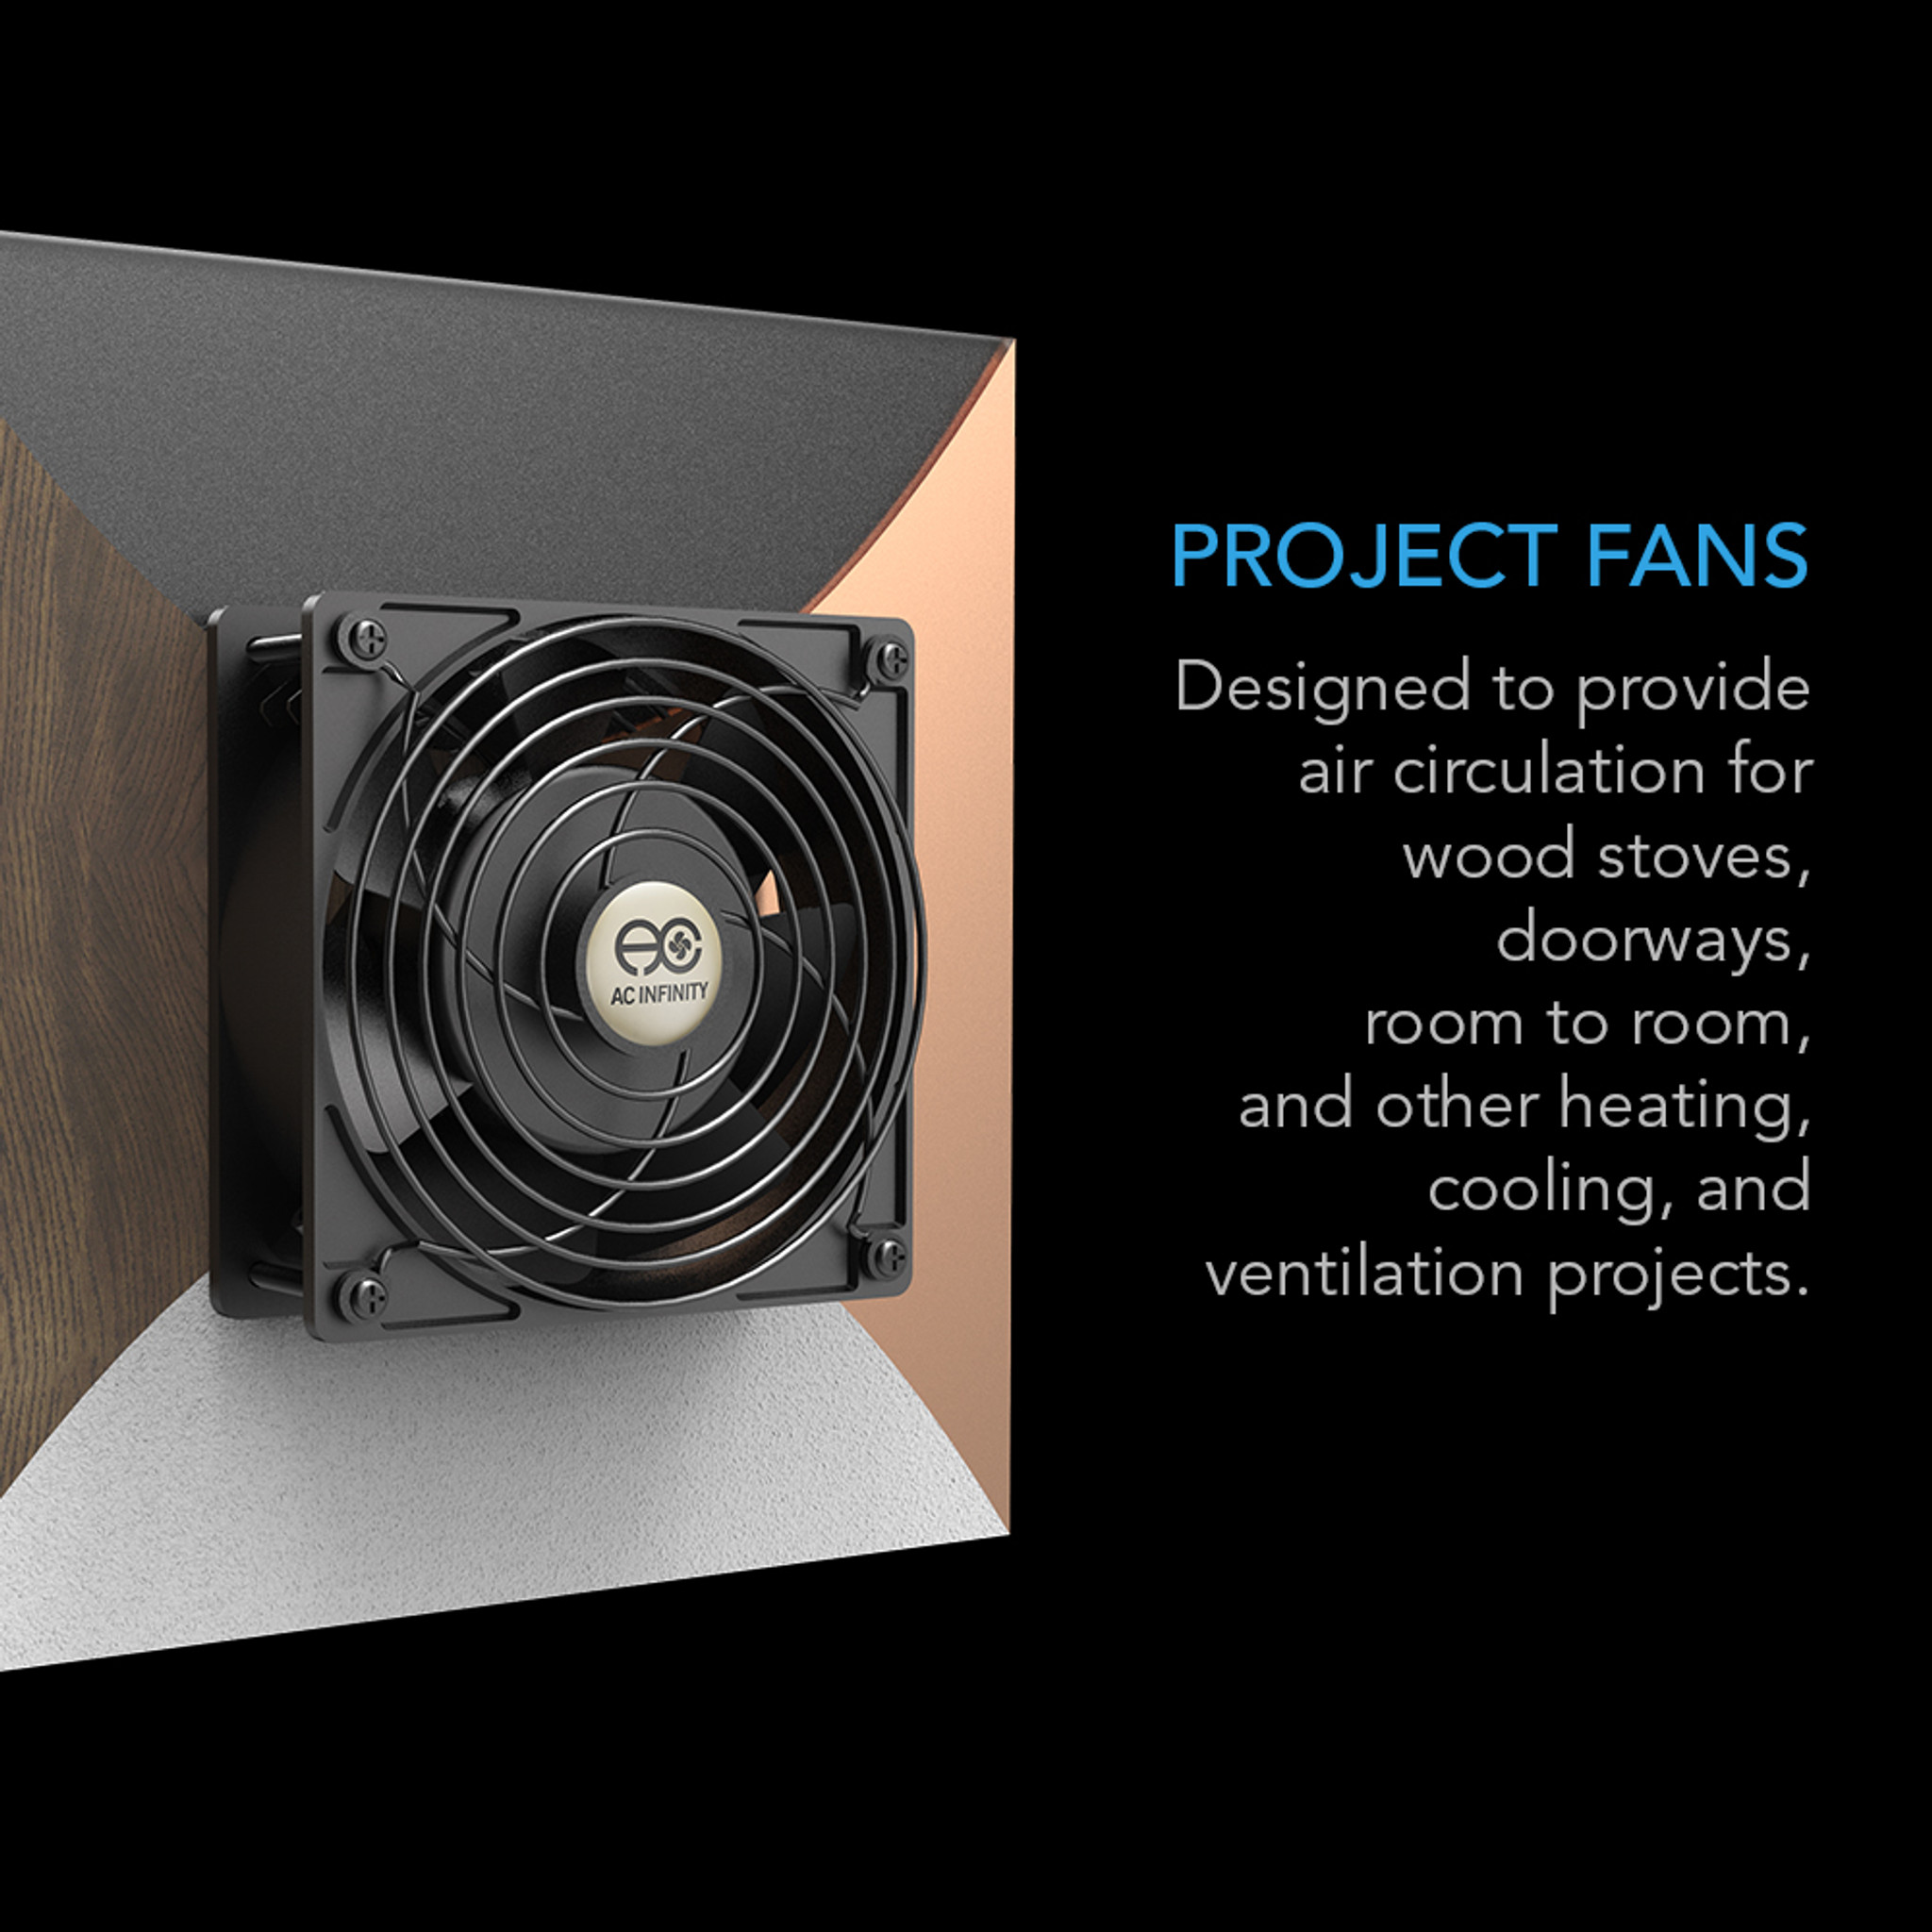 Room to Room 120mm Muffin Fan for Doorway Fireplace Wood Stove AXIAL S1225